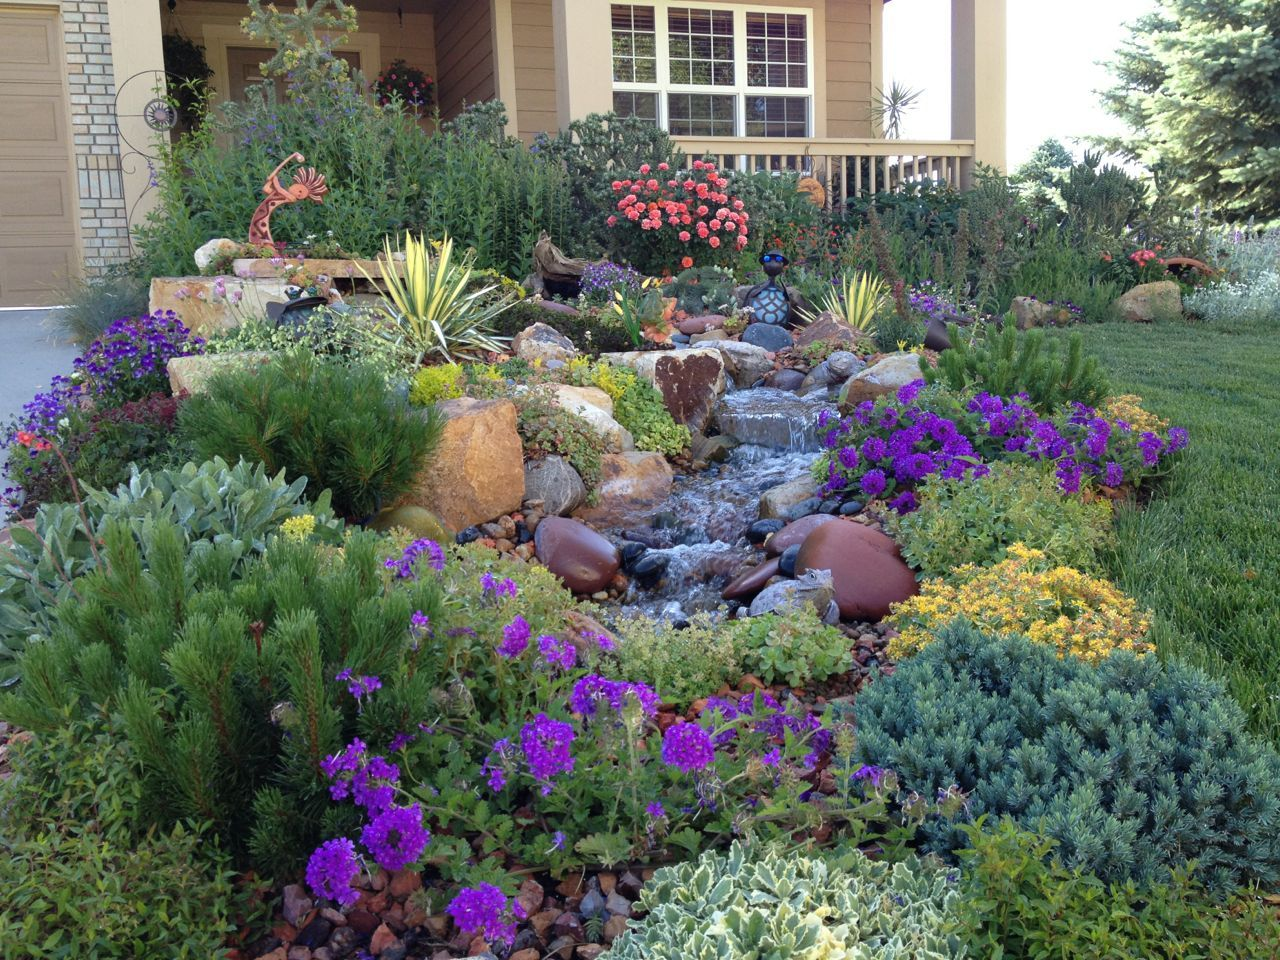 Flower garden pictures ideas - Rock Garden An Exuberant Border Plant Selection Attracts Songbirds And Butterflies Galore Photo Courtesy Of Tanya Fisher Colorado Vista Landscape Design